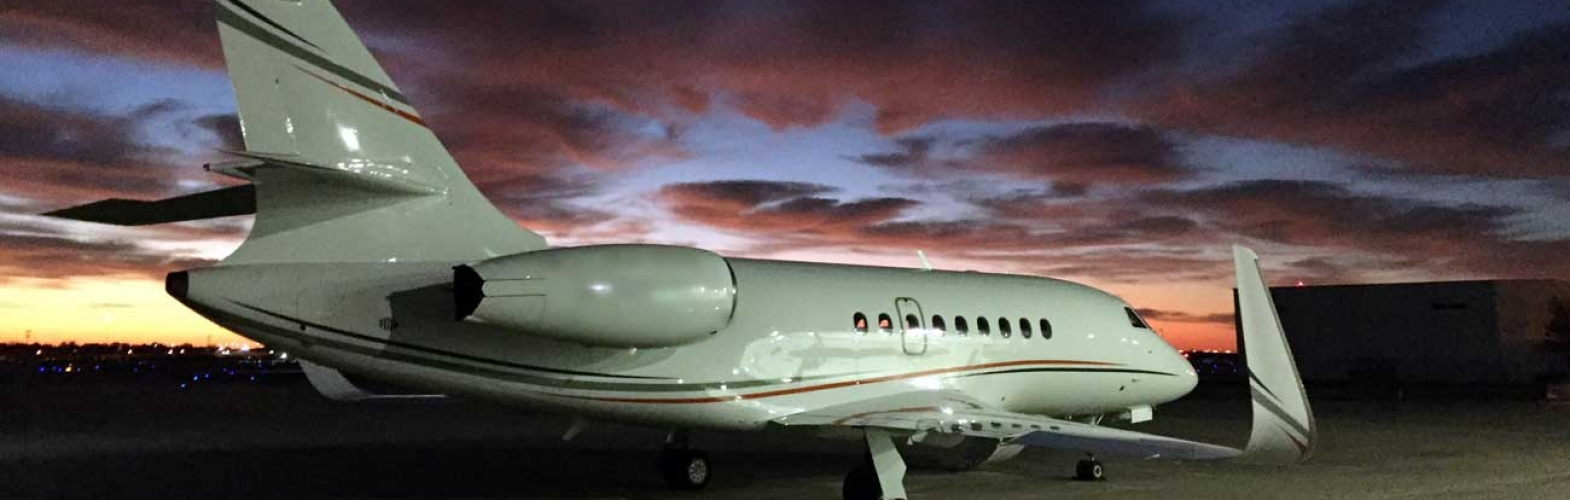 Dusk-to-Dawl-White-Biz-Jet